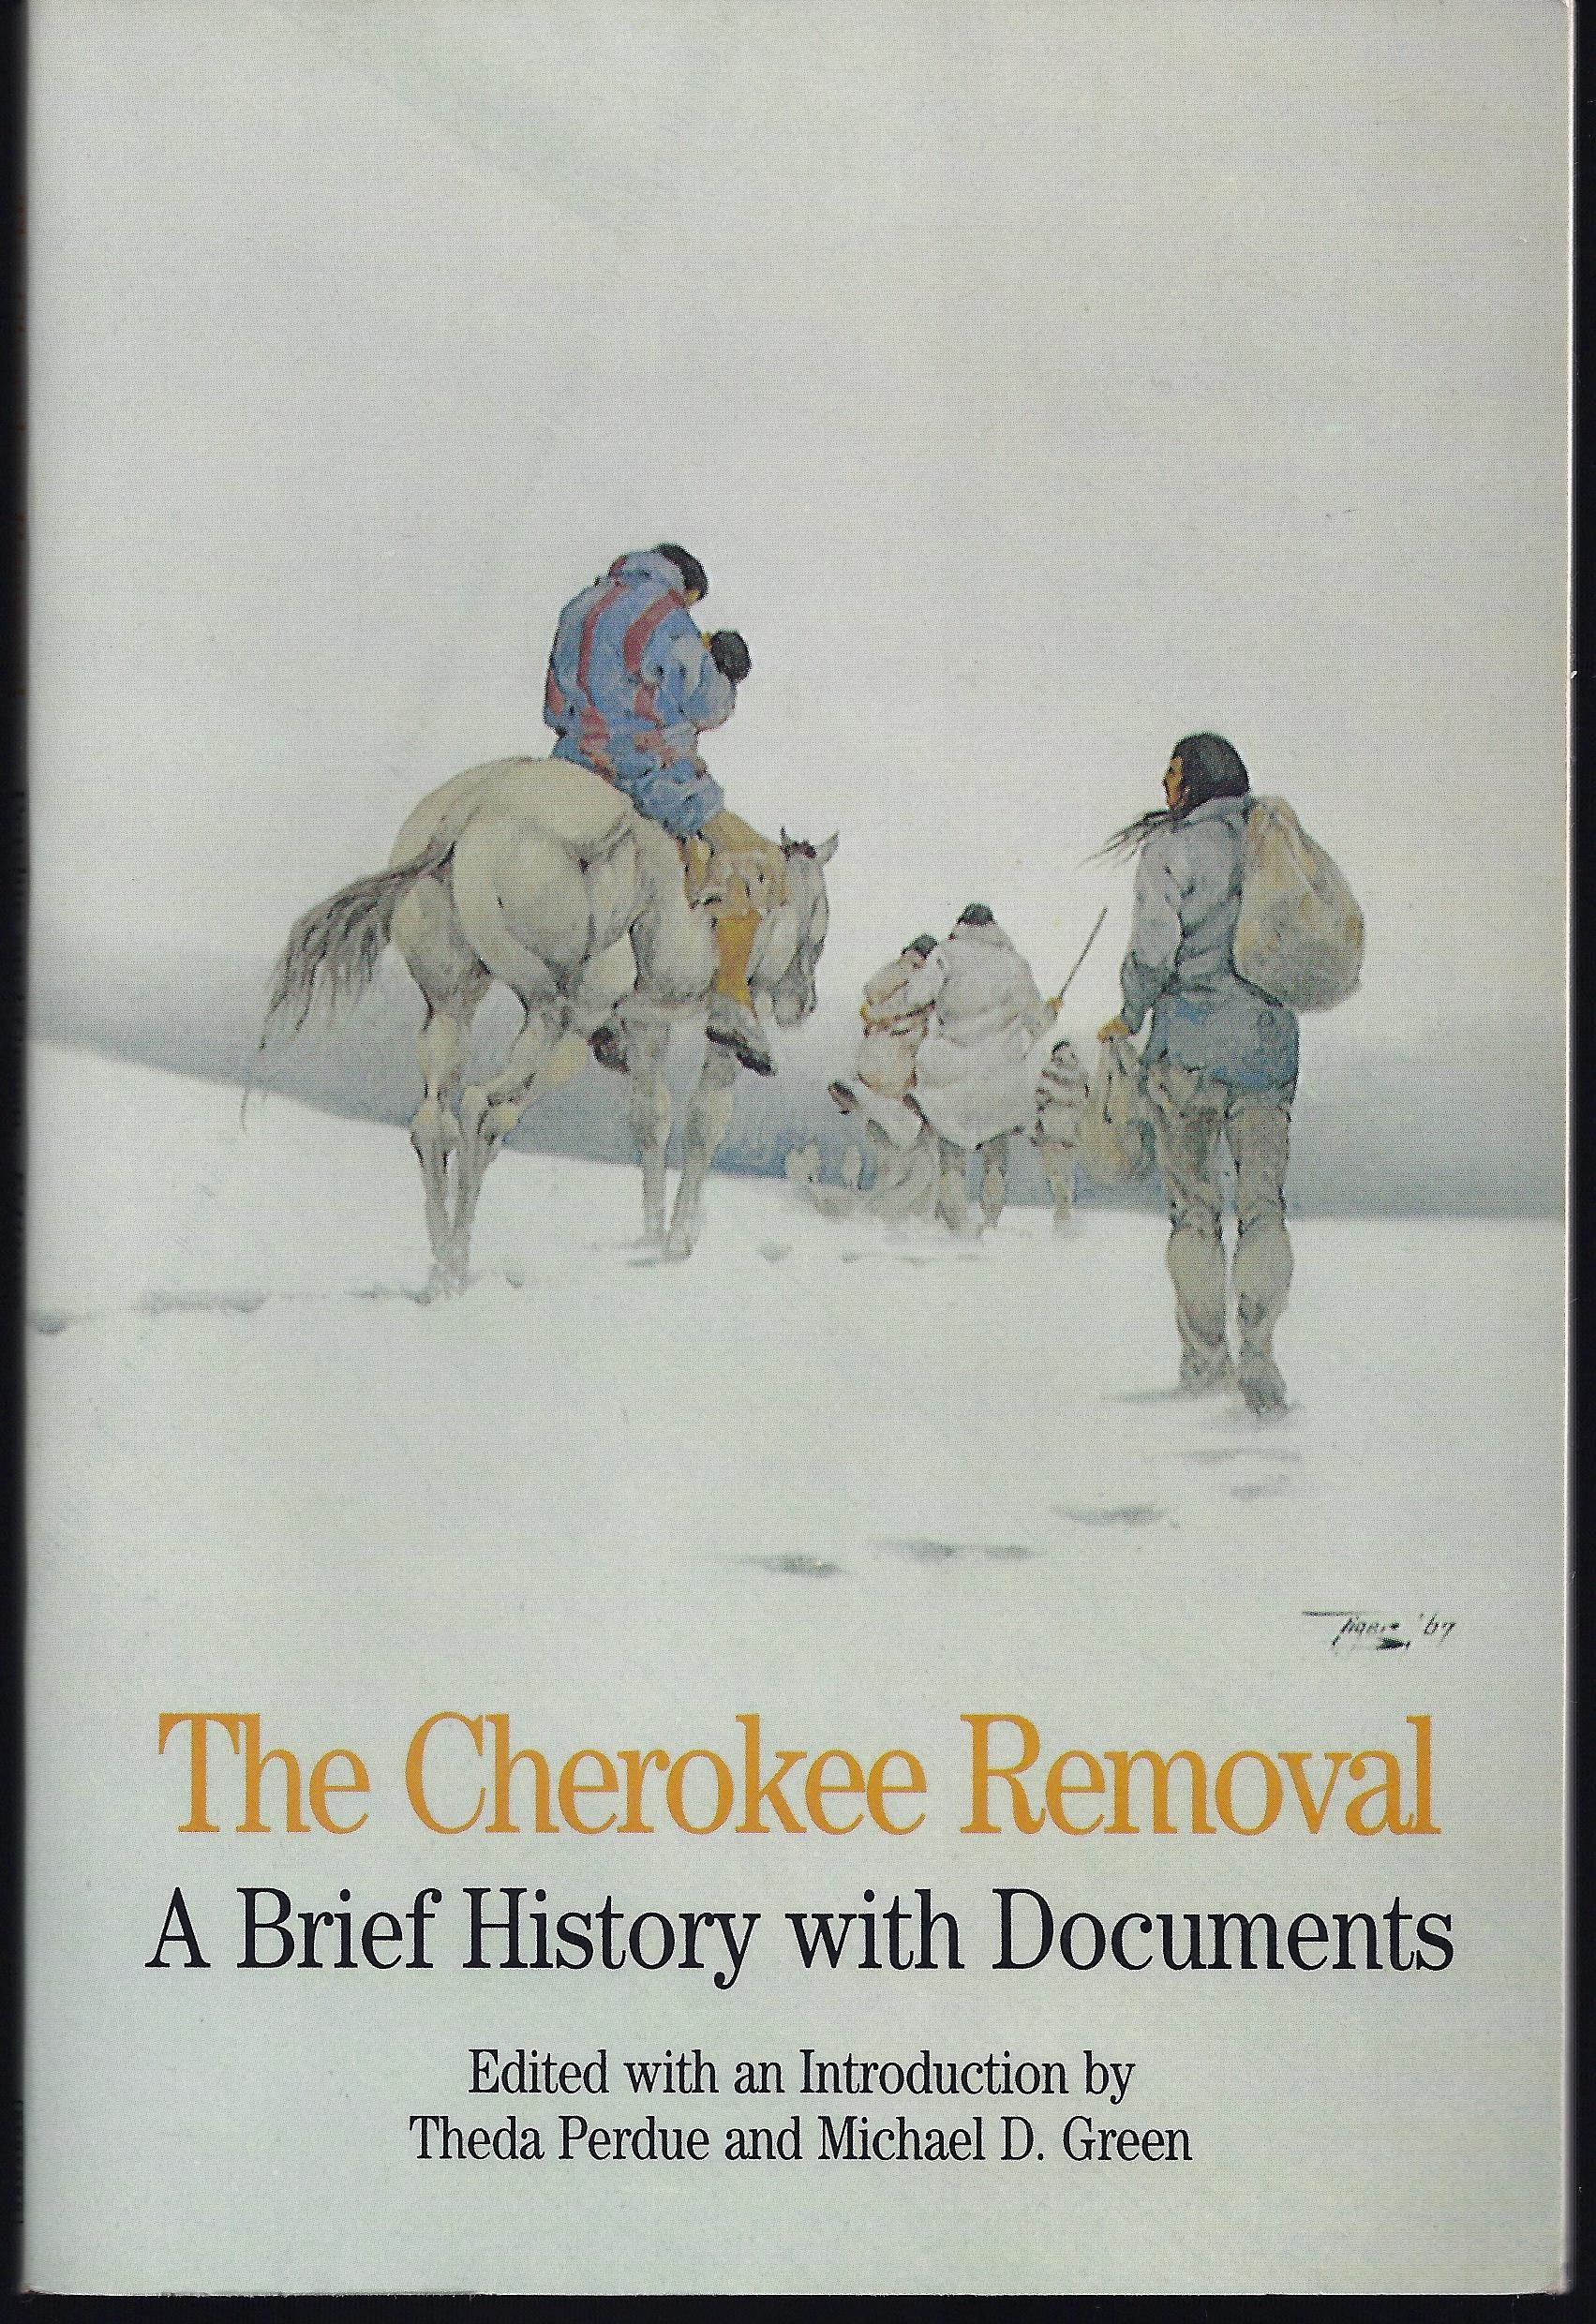 the cherokee removal a brief history with documents essay This documentary history provides a brief yet comprehensive treatment of the forced removal of the cherokee indians in 1838 from their lands in the southeastern united states to what later became oklahoma drawn from diverse sources - cherokee writings, government documents, speeches, and newspaper.